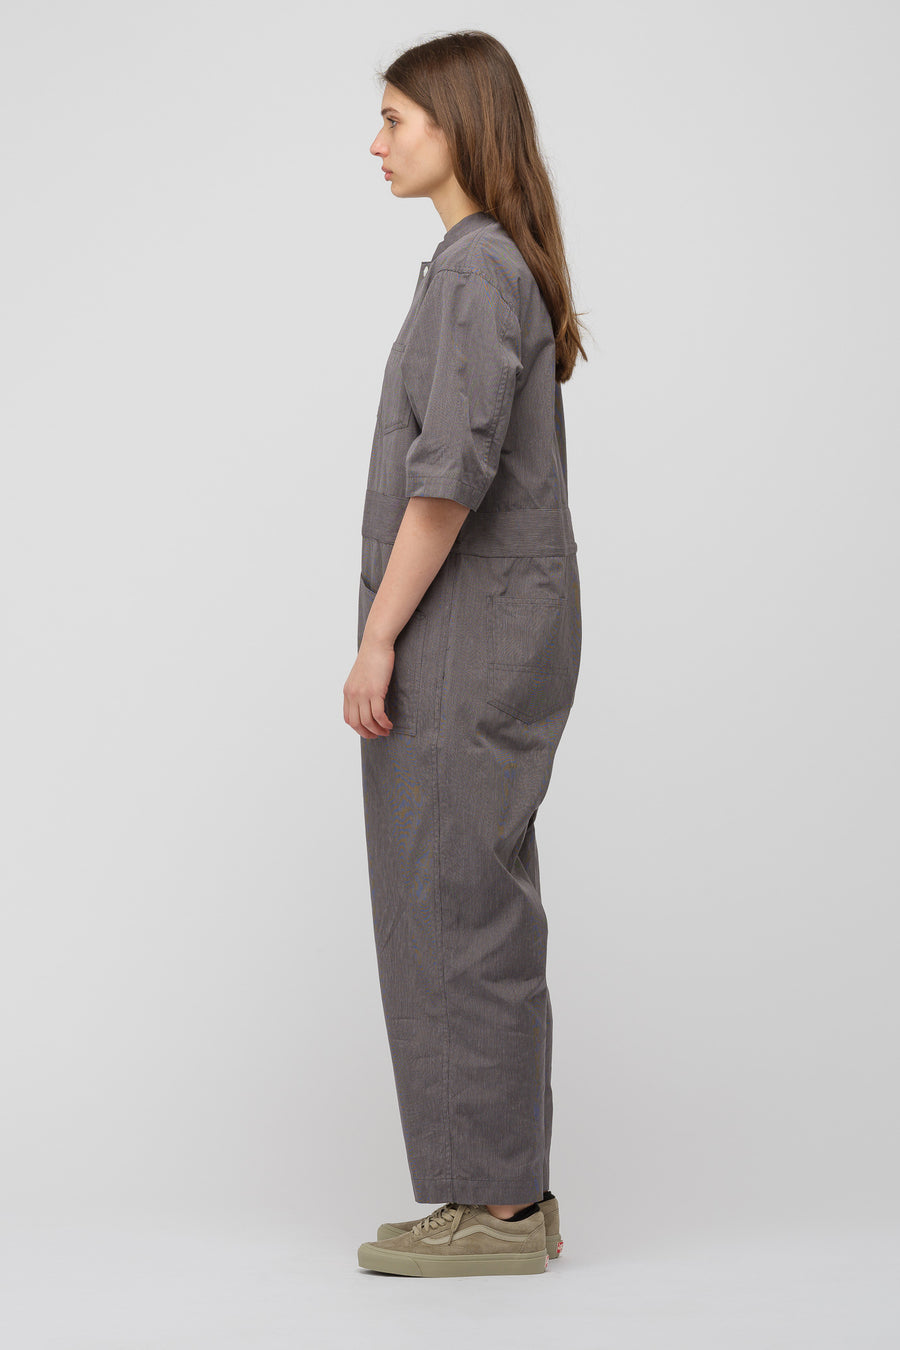 Chimala Heavy Twisted Classic Codelane All-In-One in Grey Stripe - Notre